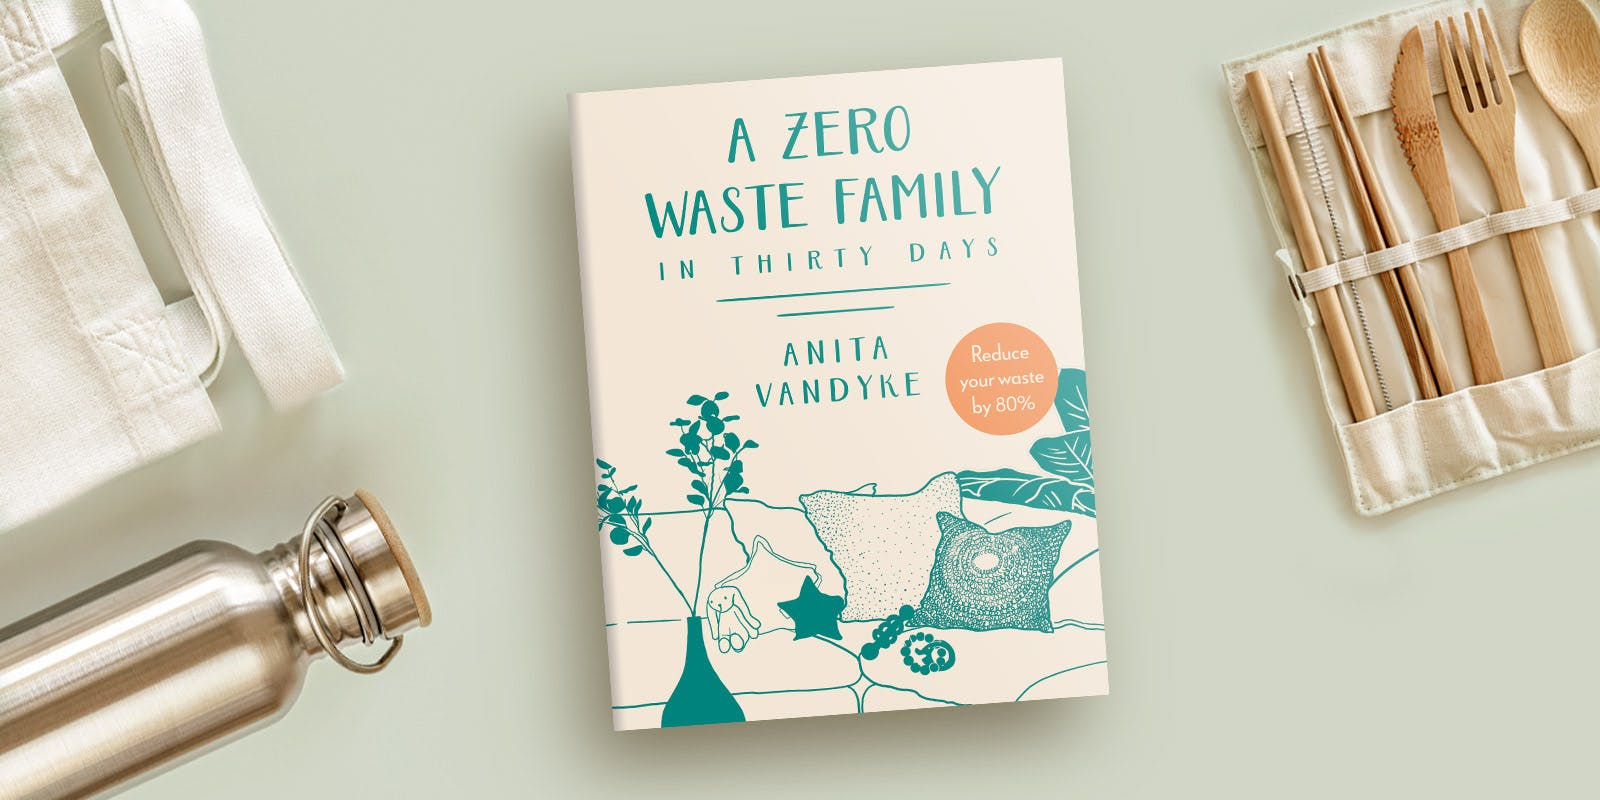 Start your zero waste family journey